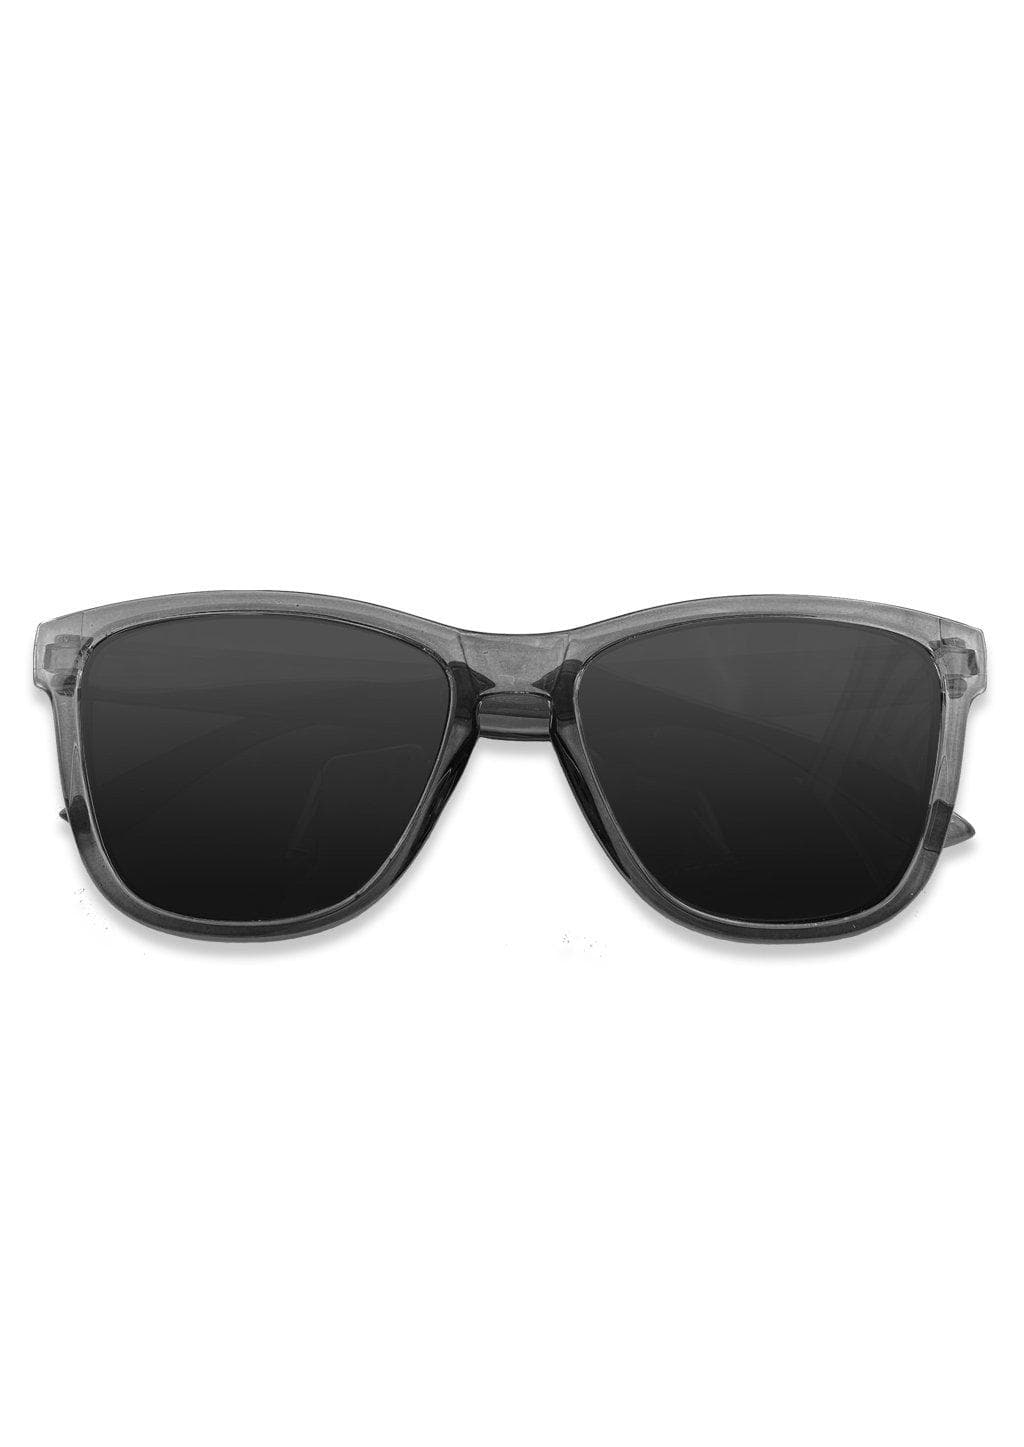 Our Mood V2 is an improved version of our last wayfarers. Plastic body for great quality and durabilty. This is Classic with a dark transparent frame and grey lenses. From the front.